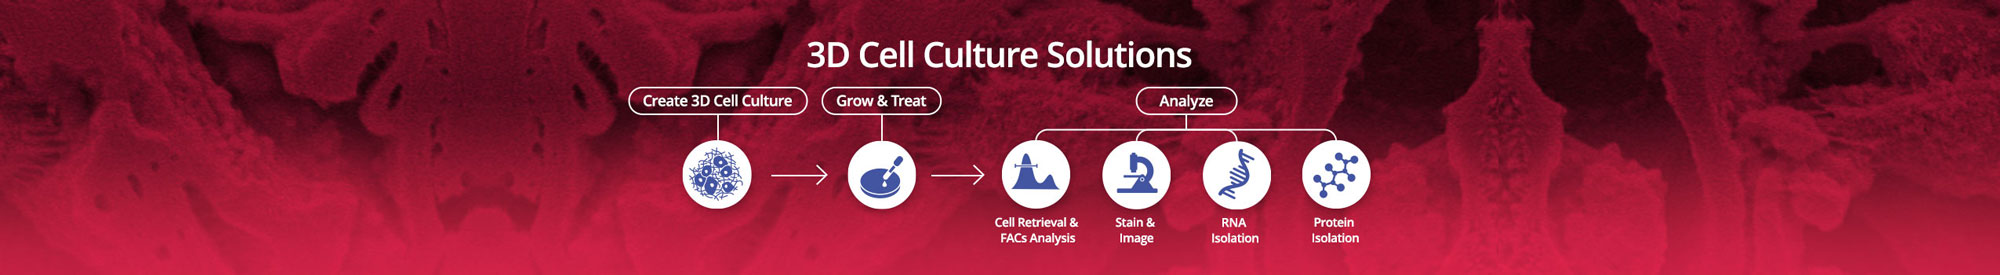 3d Cell Culture Solutions - BRTI Life Sciences